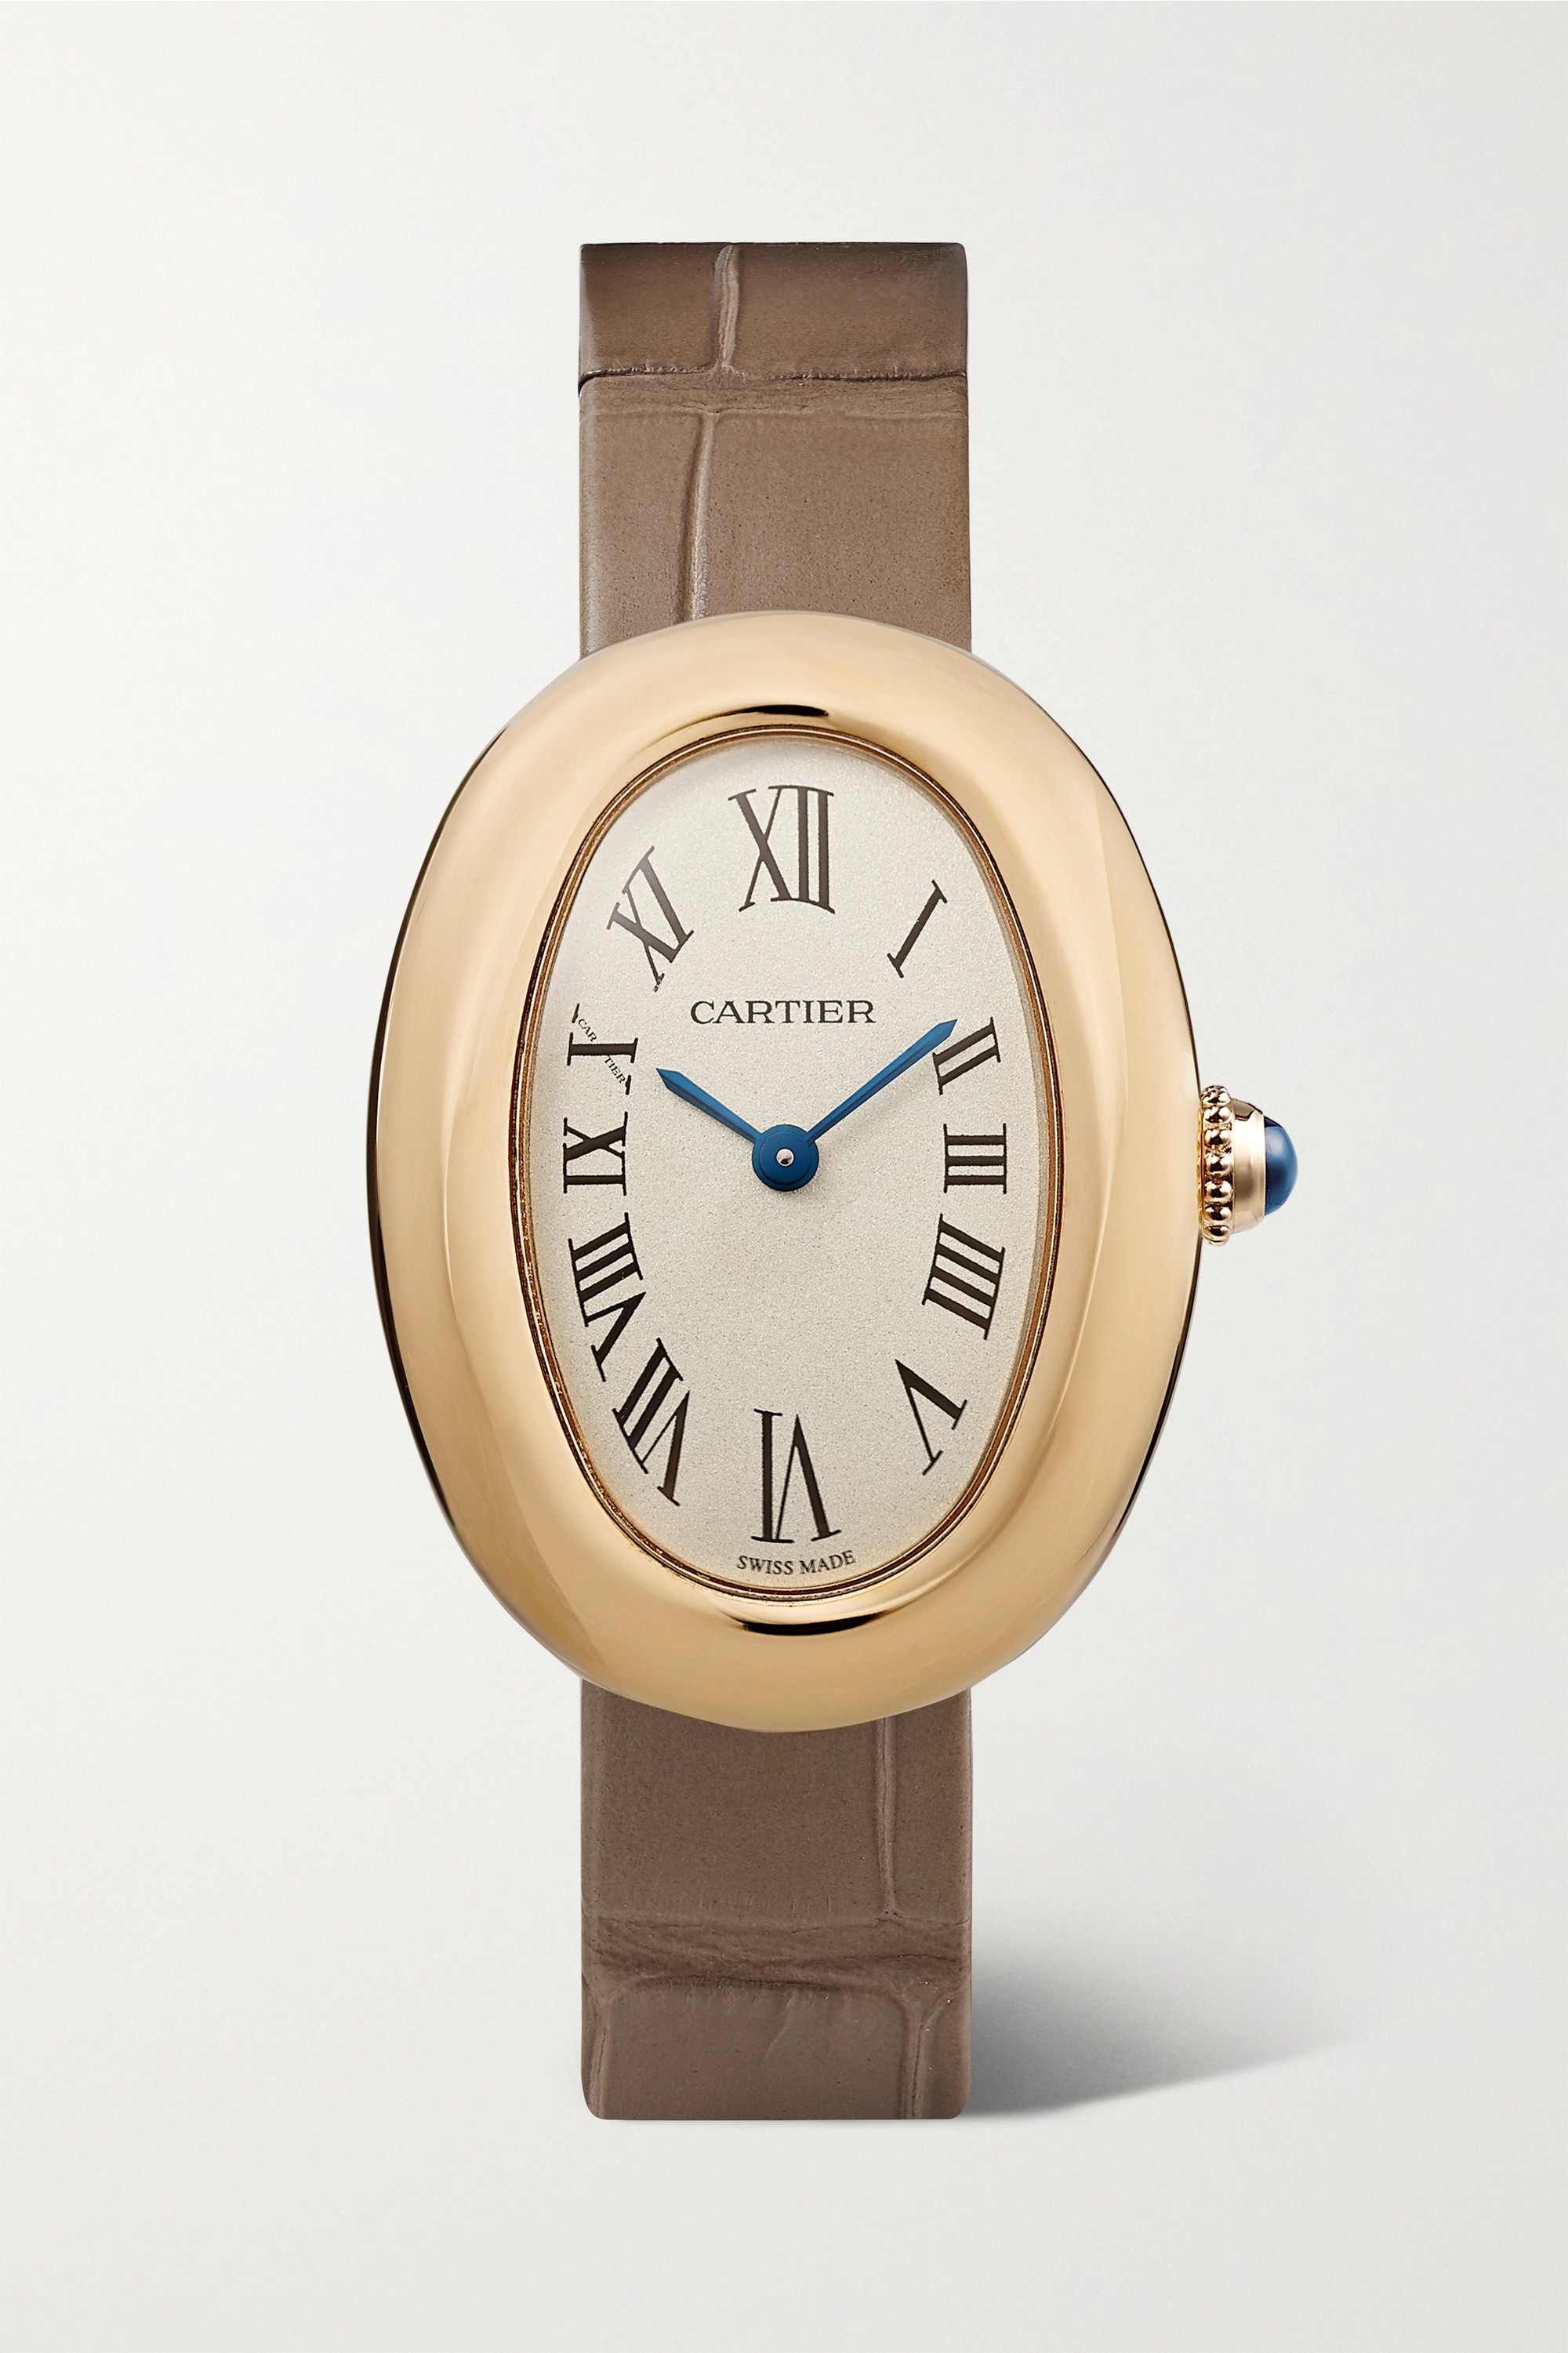 CARTIER Baignoire 1920 26mm small 18-karat gold and alligator watch